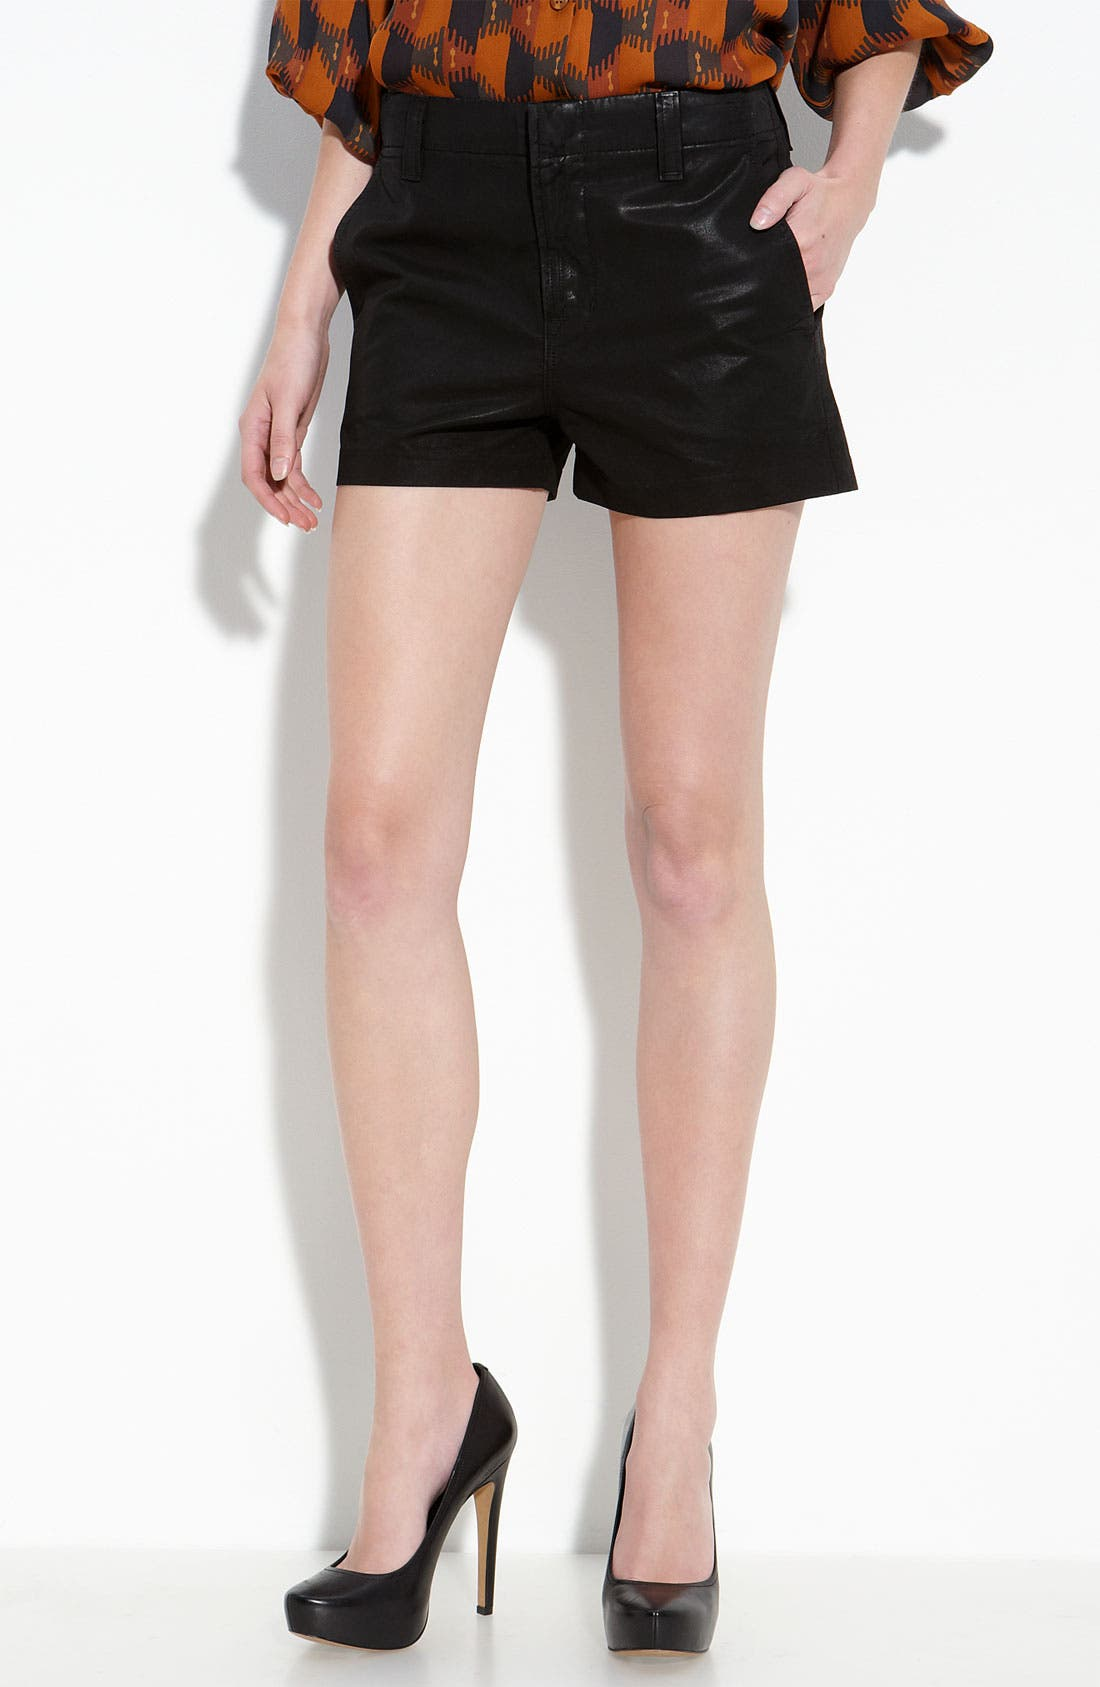 Alternate Image 1 Selected - J Brand 'Lola' High Rise Wax Coated Denim Shorts